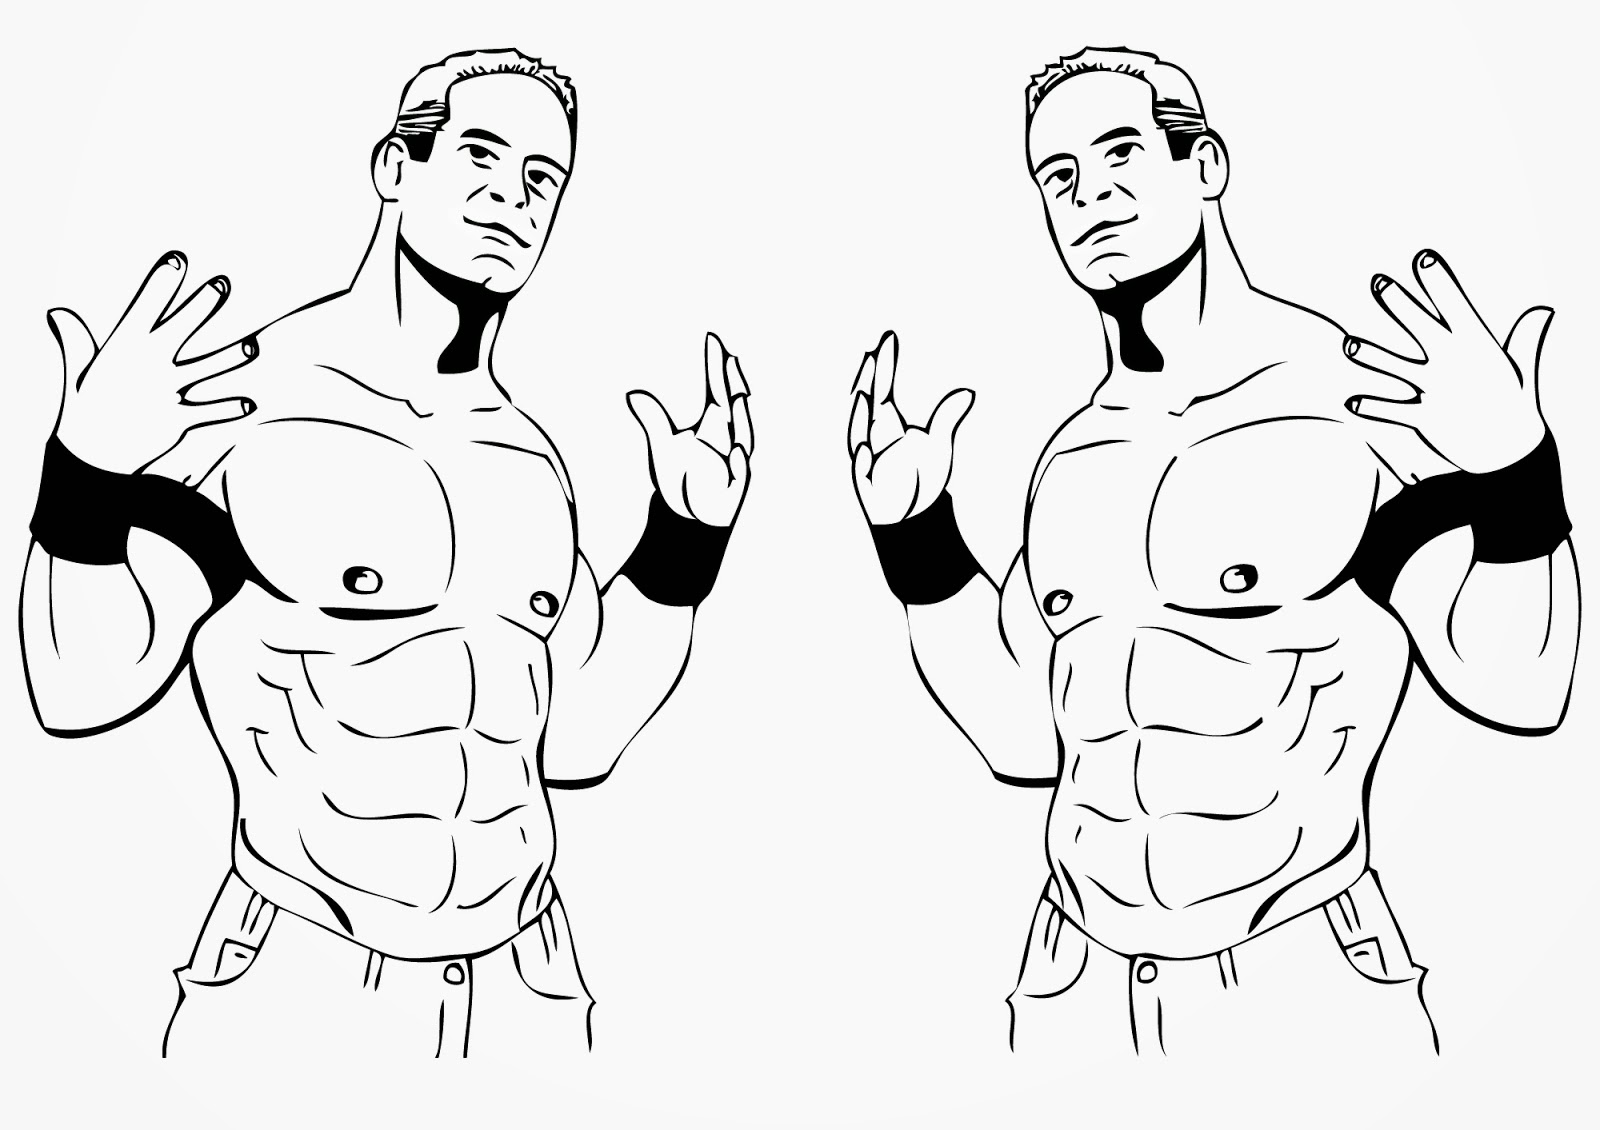 John cena coloring easy coloring pages for Wwe raw coloring pages